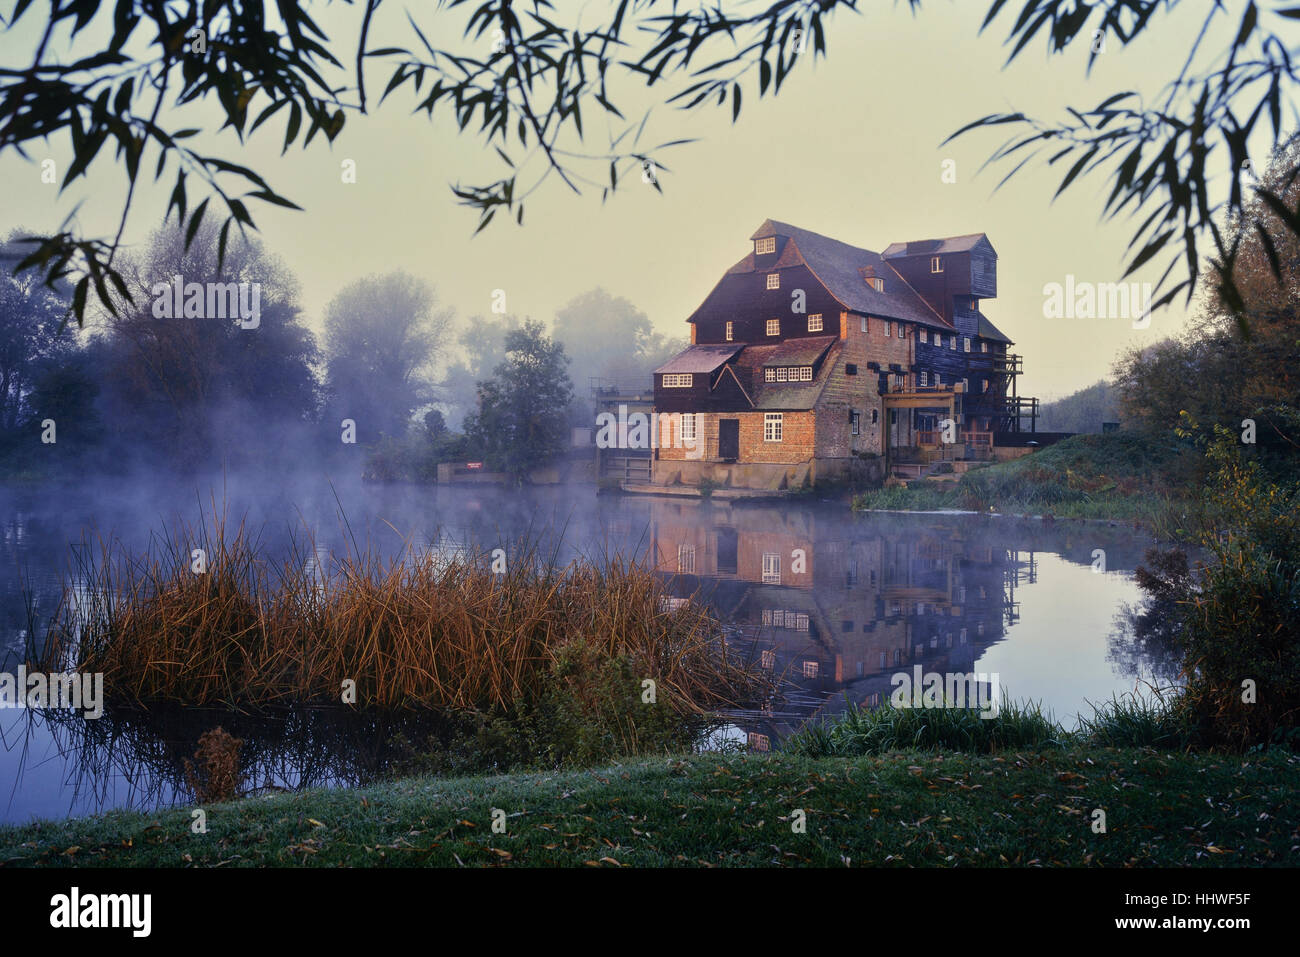 Houghton Mill. Huntingdon. Cambridgeshire. England. UK - Stock Image